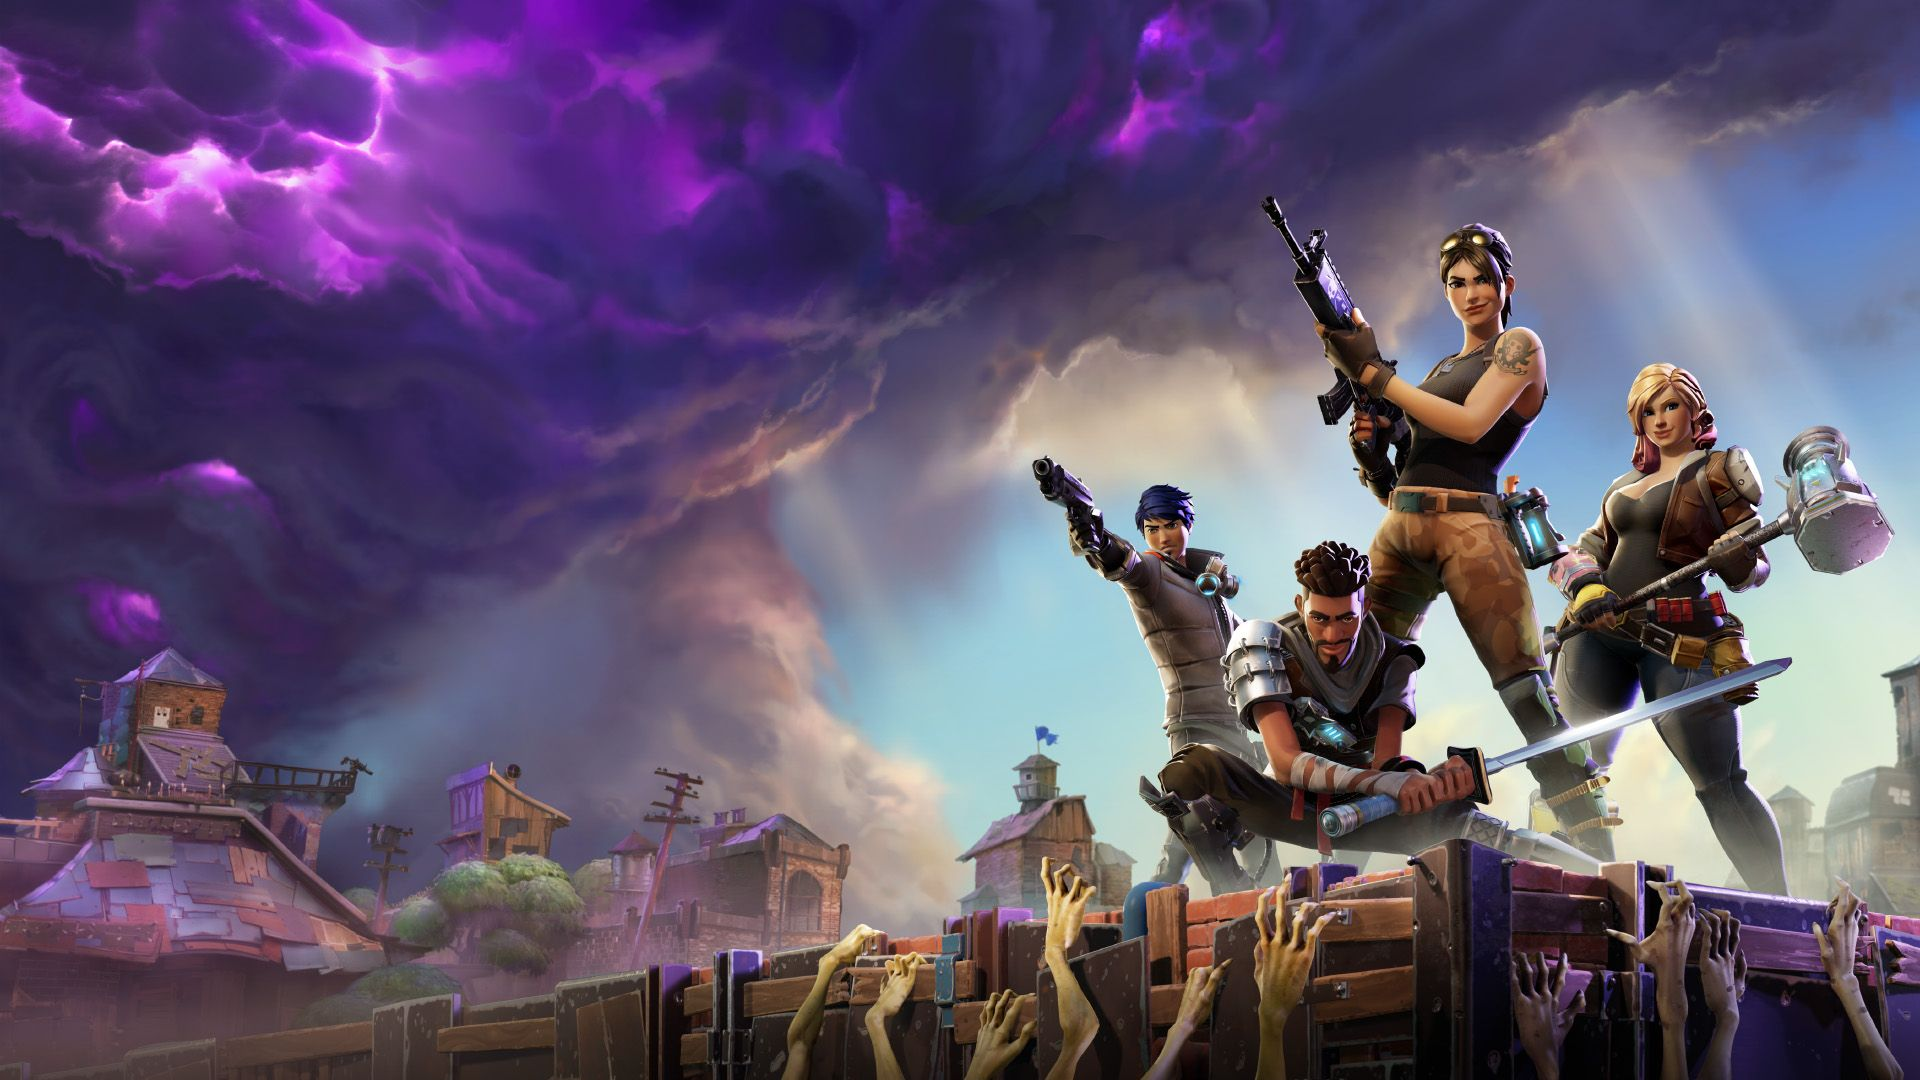 How To Download 1080p Fortnite Wallpaper To Your Computer